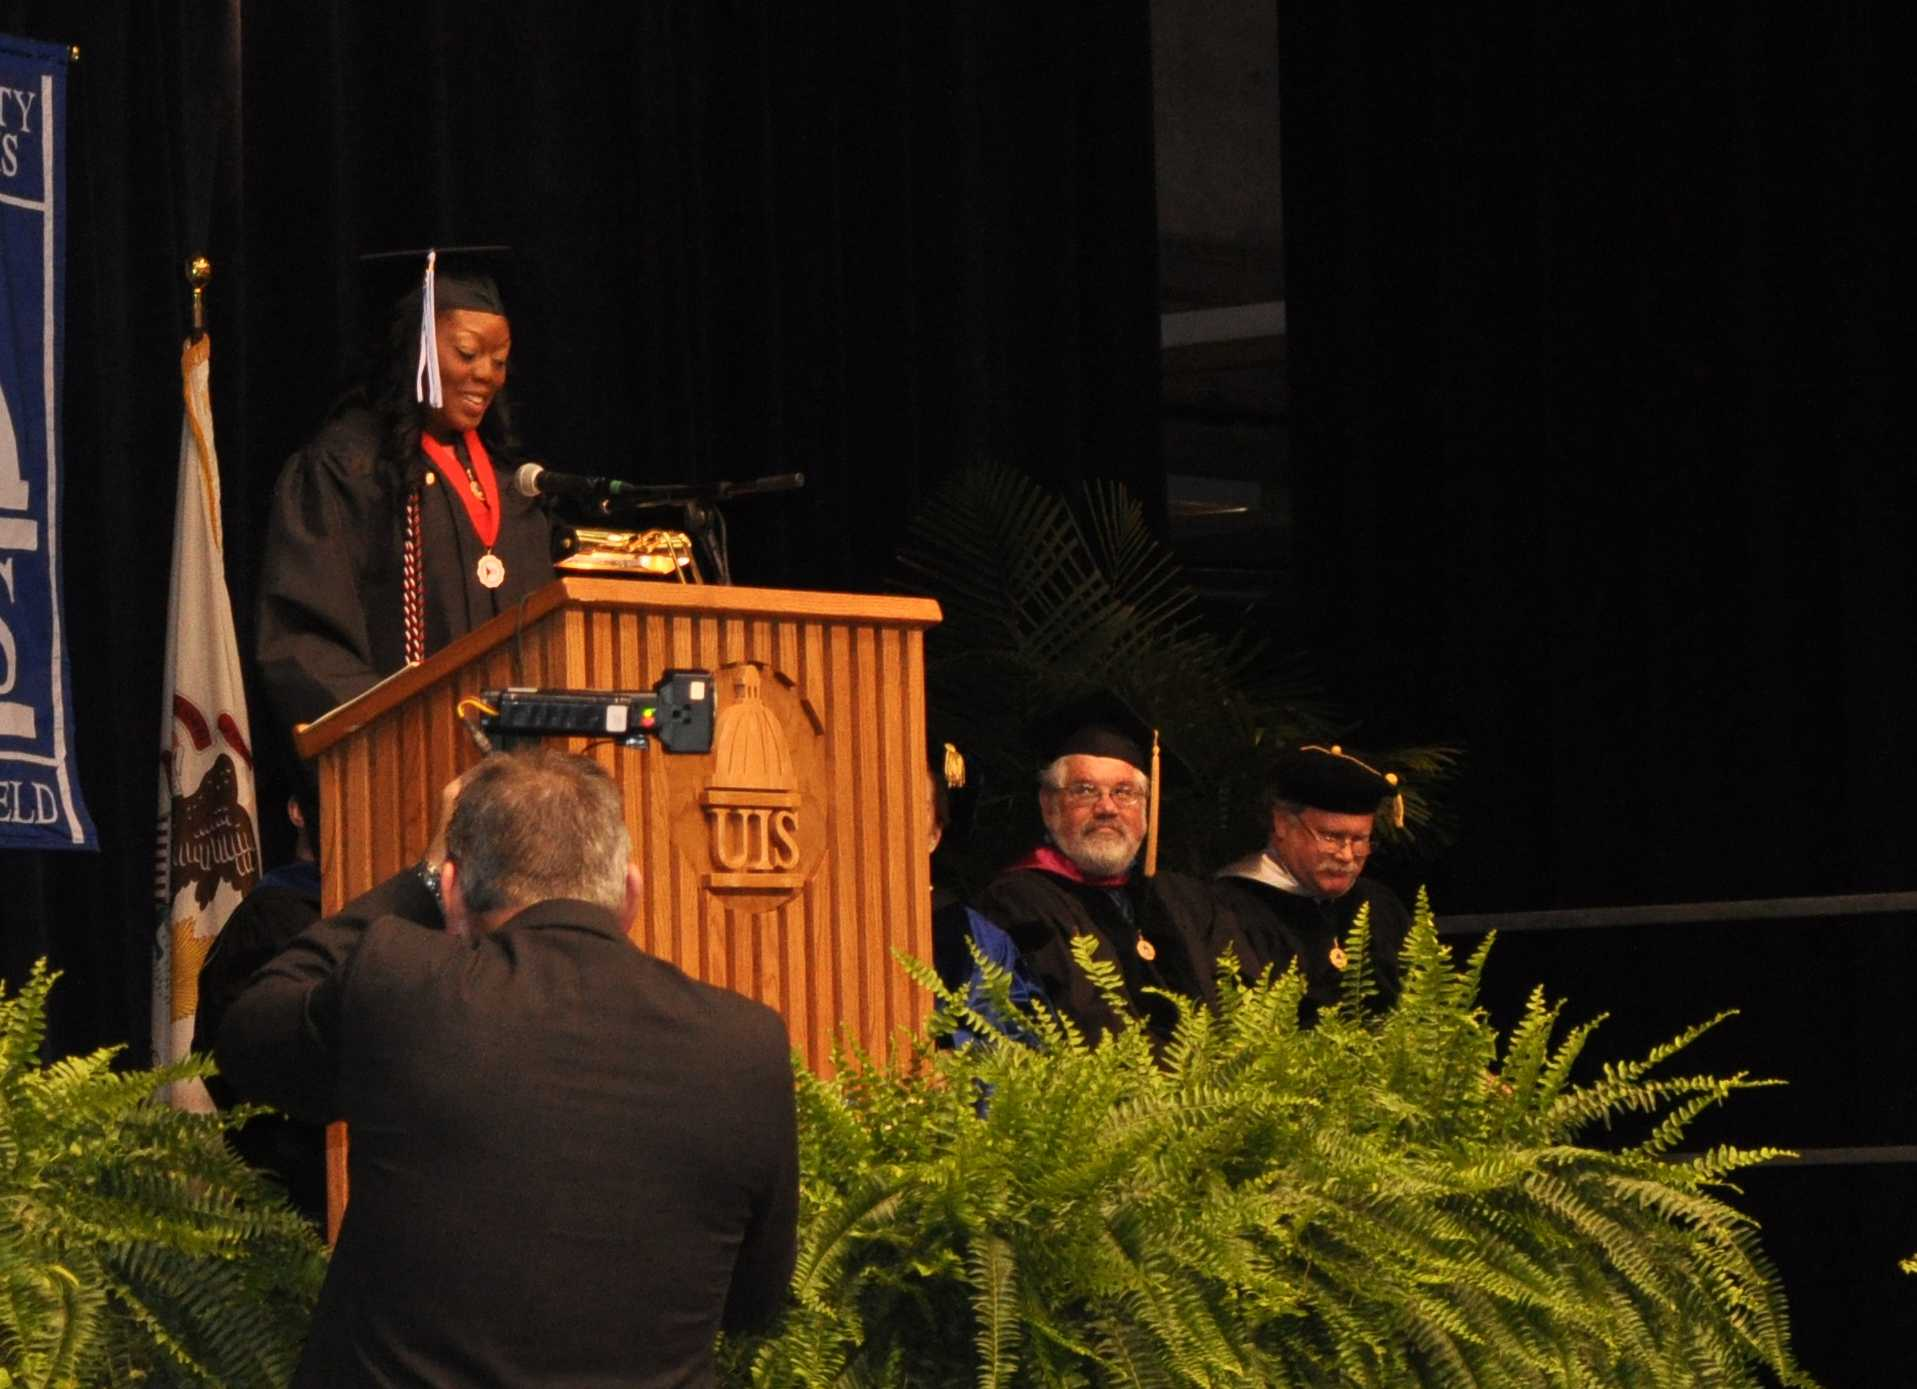 Jessica Odigie, UIS graduate of 2012, delivers her student commencement address.